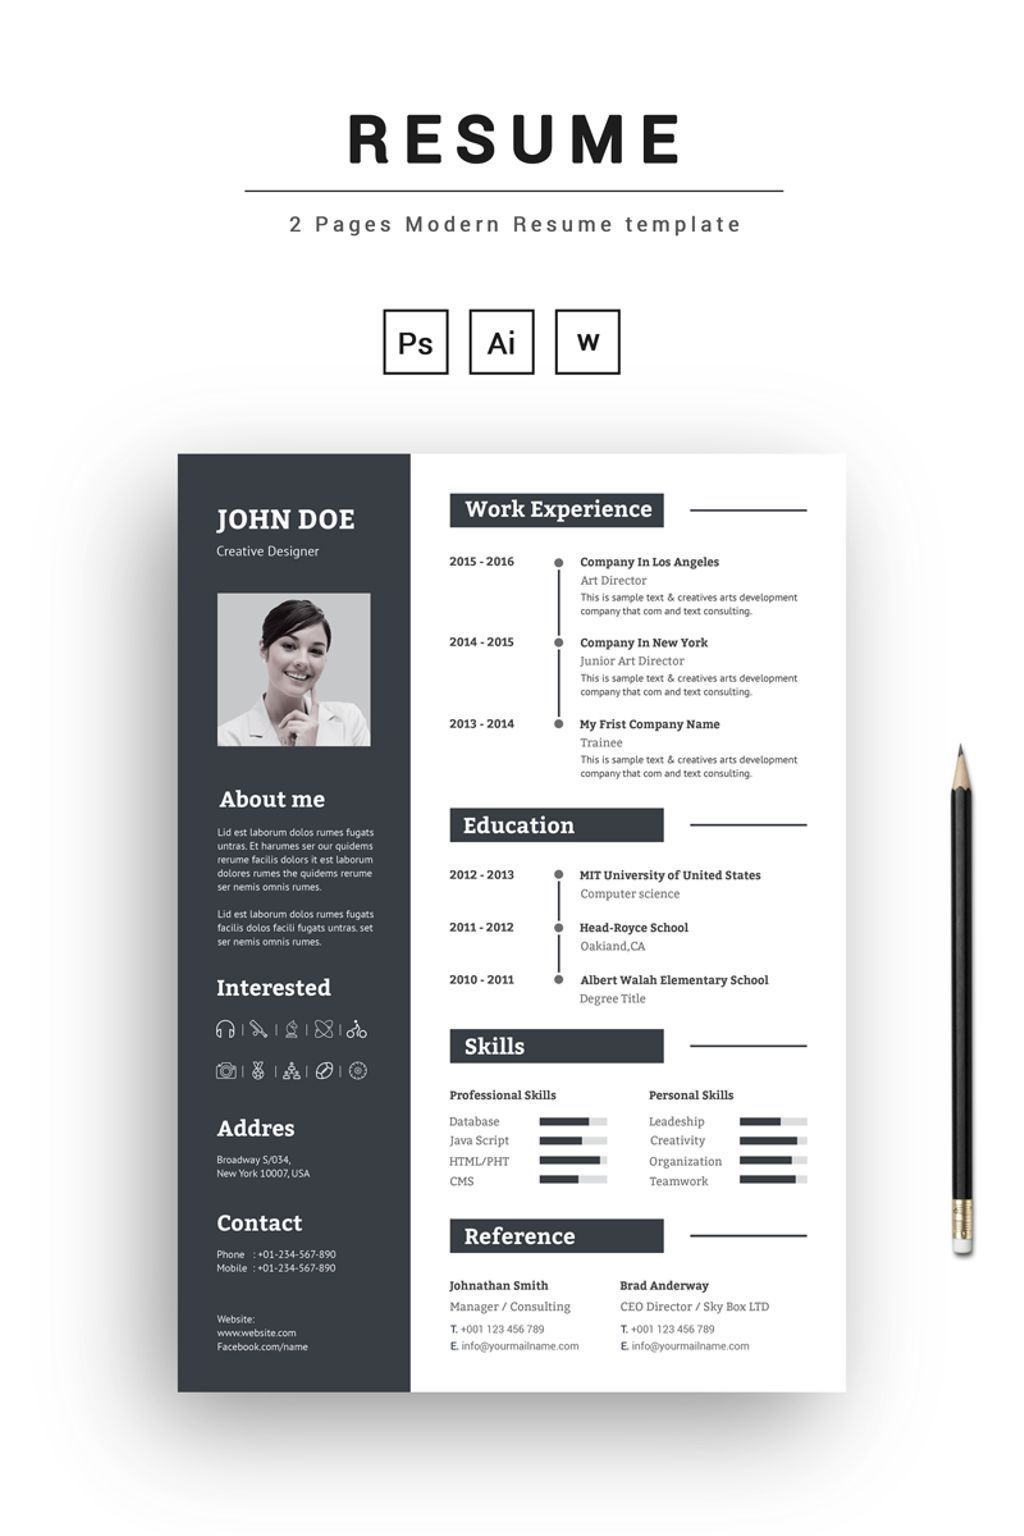 2 Pages Modern Resume Template Resume Resumetemplate Cvtemplate Cv Cvdesign Resumedesign Modern Resume Template Resume Template Resume Design Creative